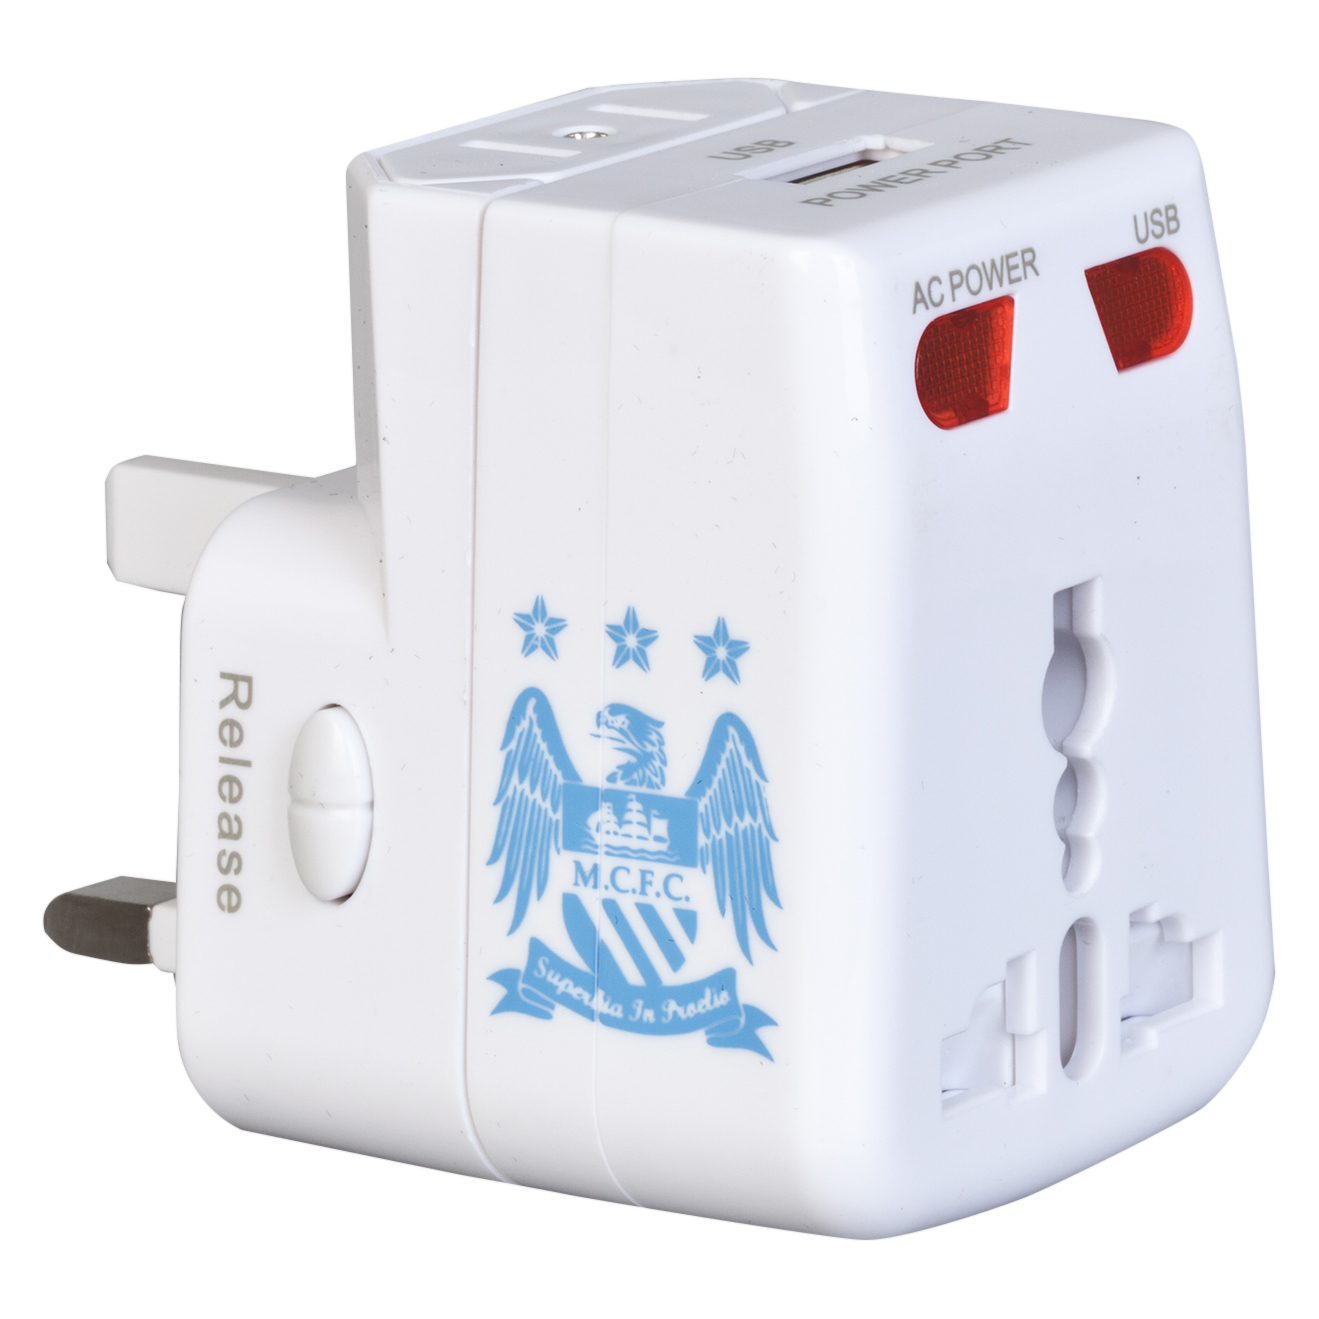 Manchester City Usb Travel Adaptor